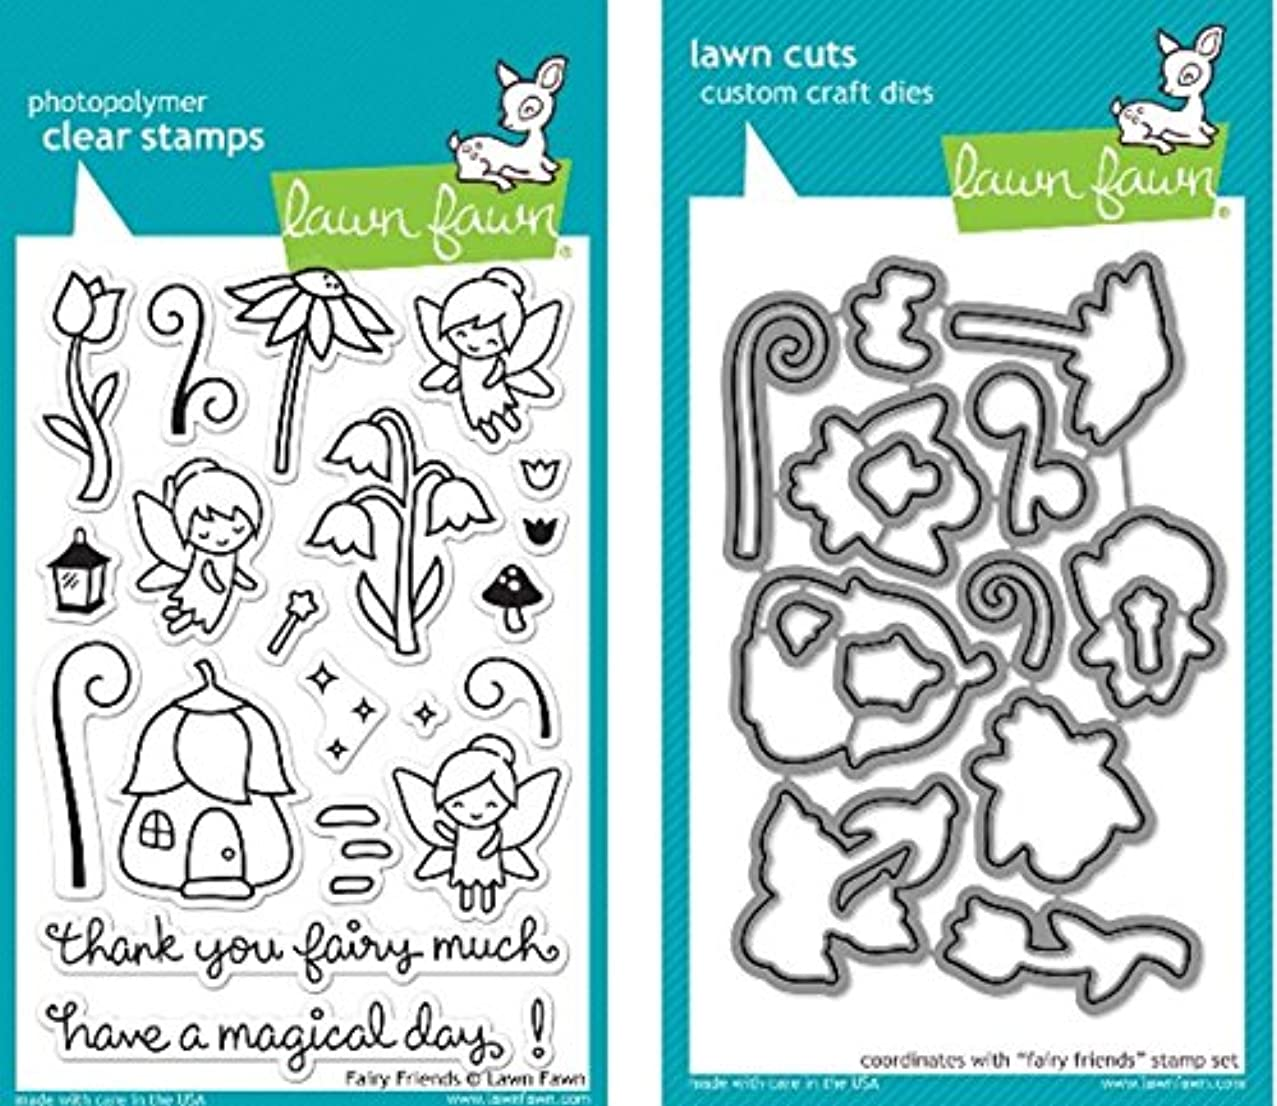 Lawn Fawn Fairy Friends Clear Stamp and Die Set - Includes One Each of LF1057 Stamp & LF1058 Die - Bundle Of 2